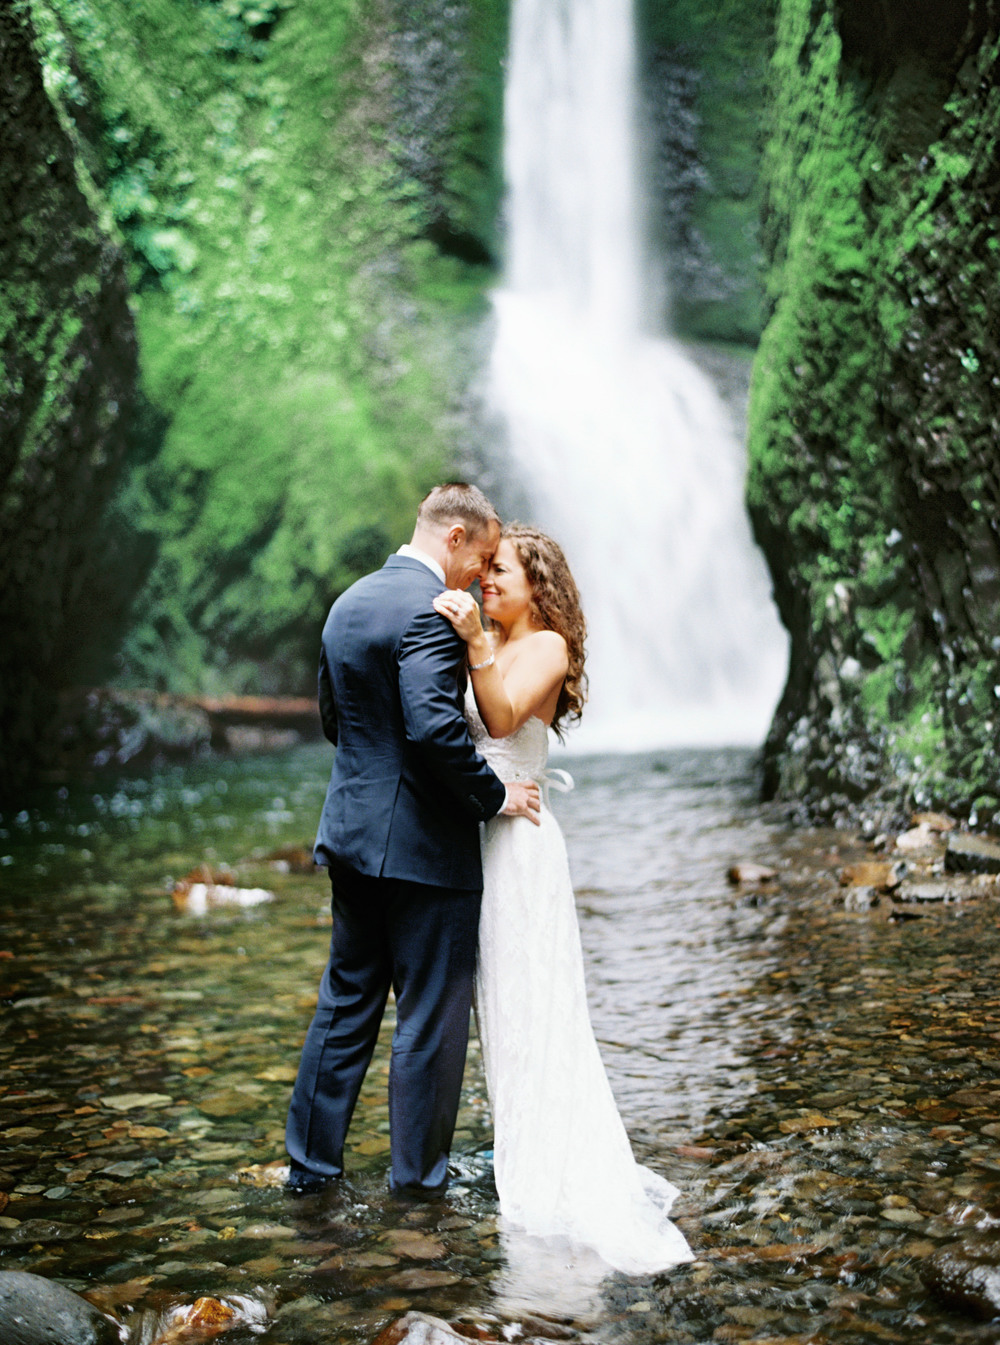 069OneontaGorge+Elopement+Photography+Videography+Oregon+OutliveCreative.jpg